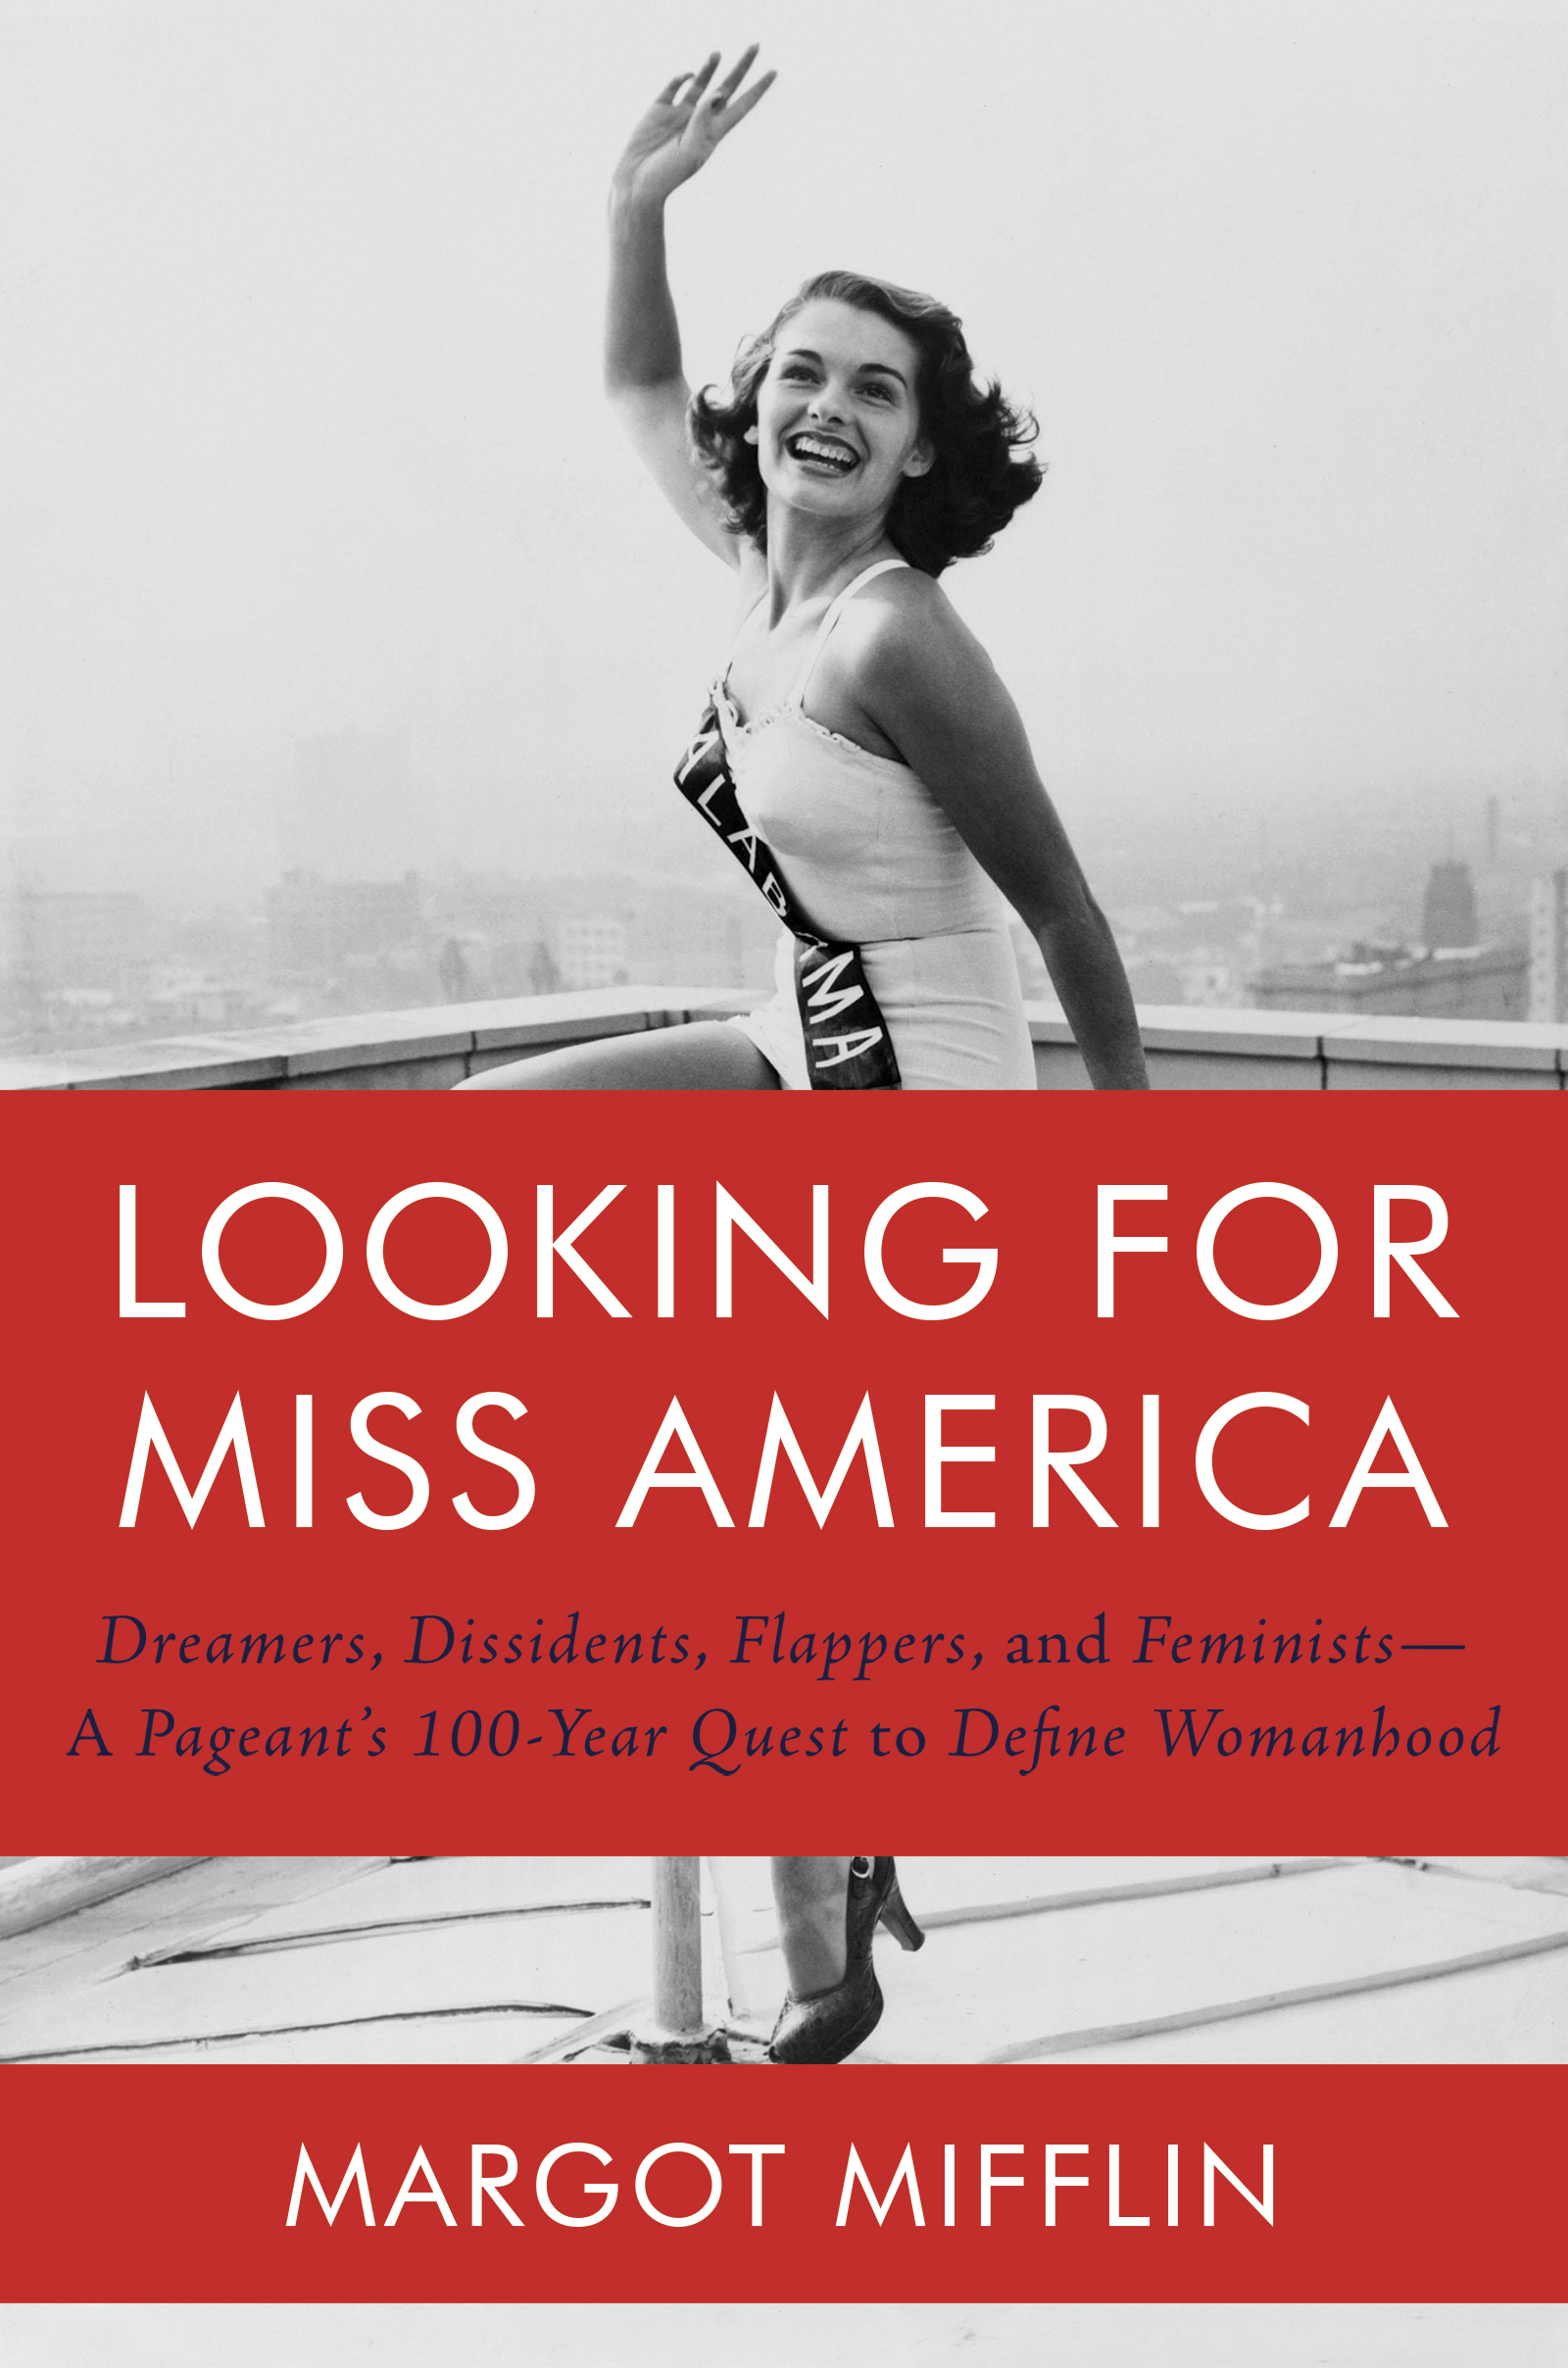 Virtual Book Launch: Looking for Miss America by Margot Mifflin in conversation with Jessica Bennett